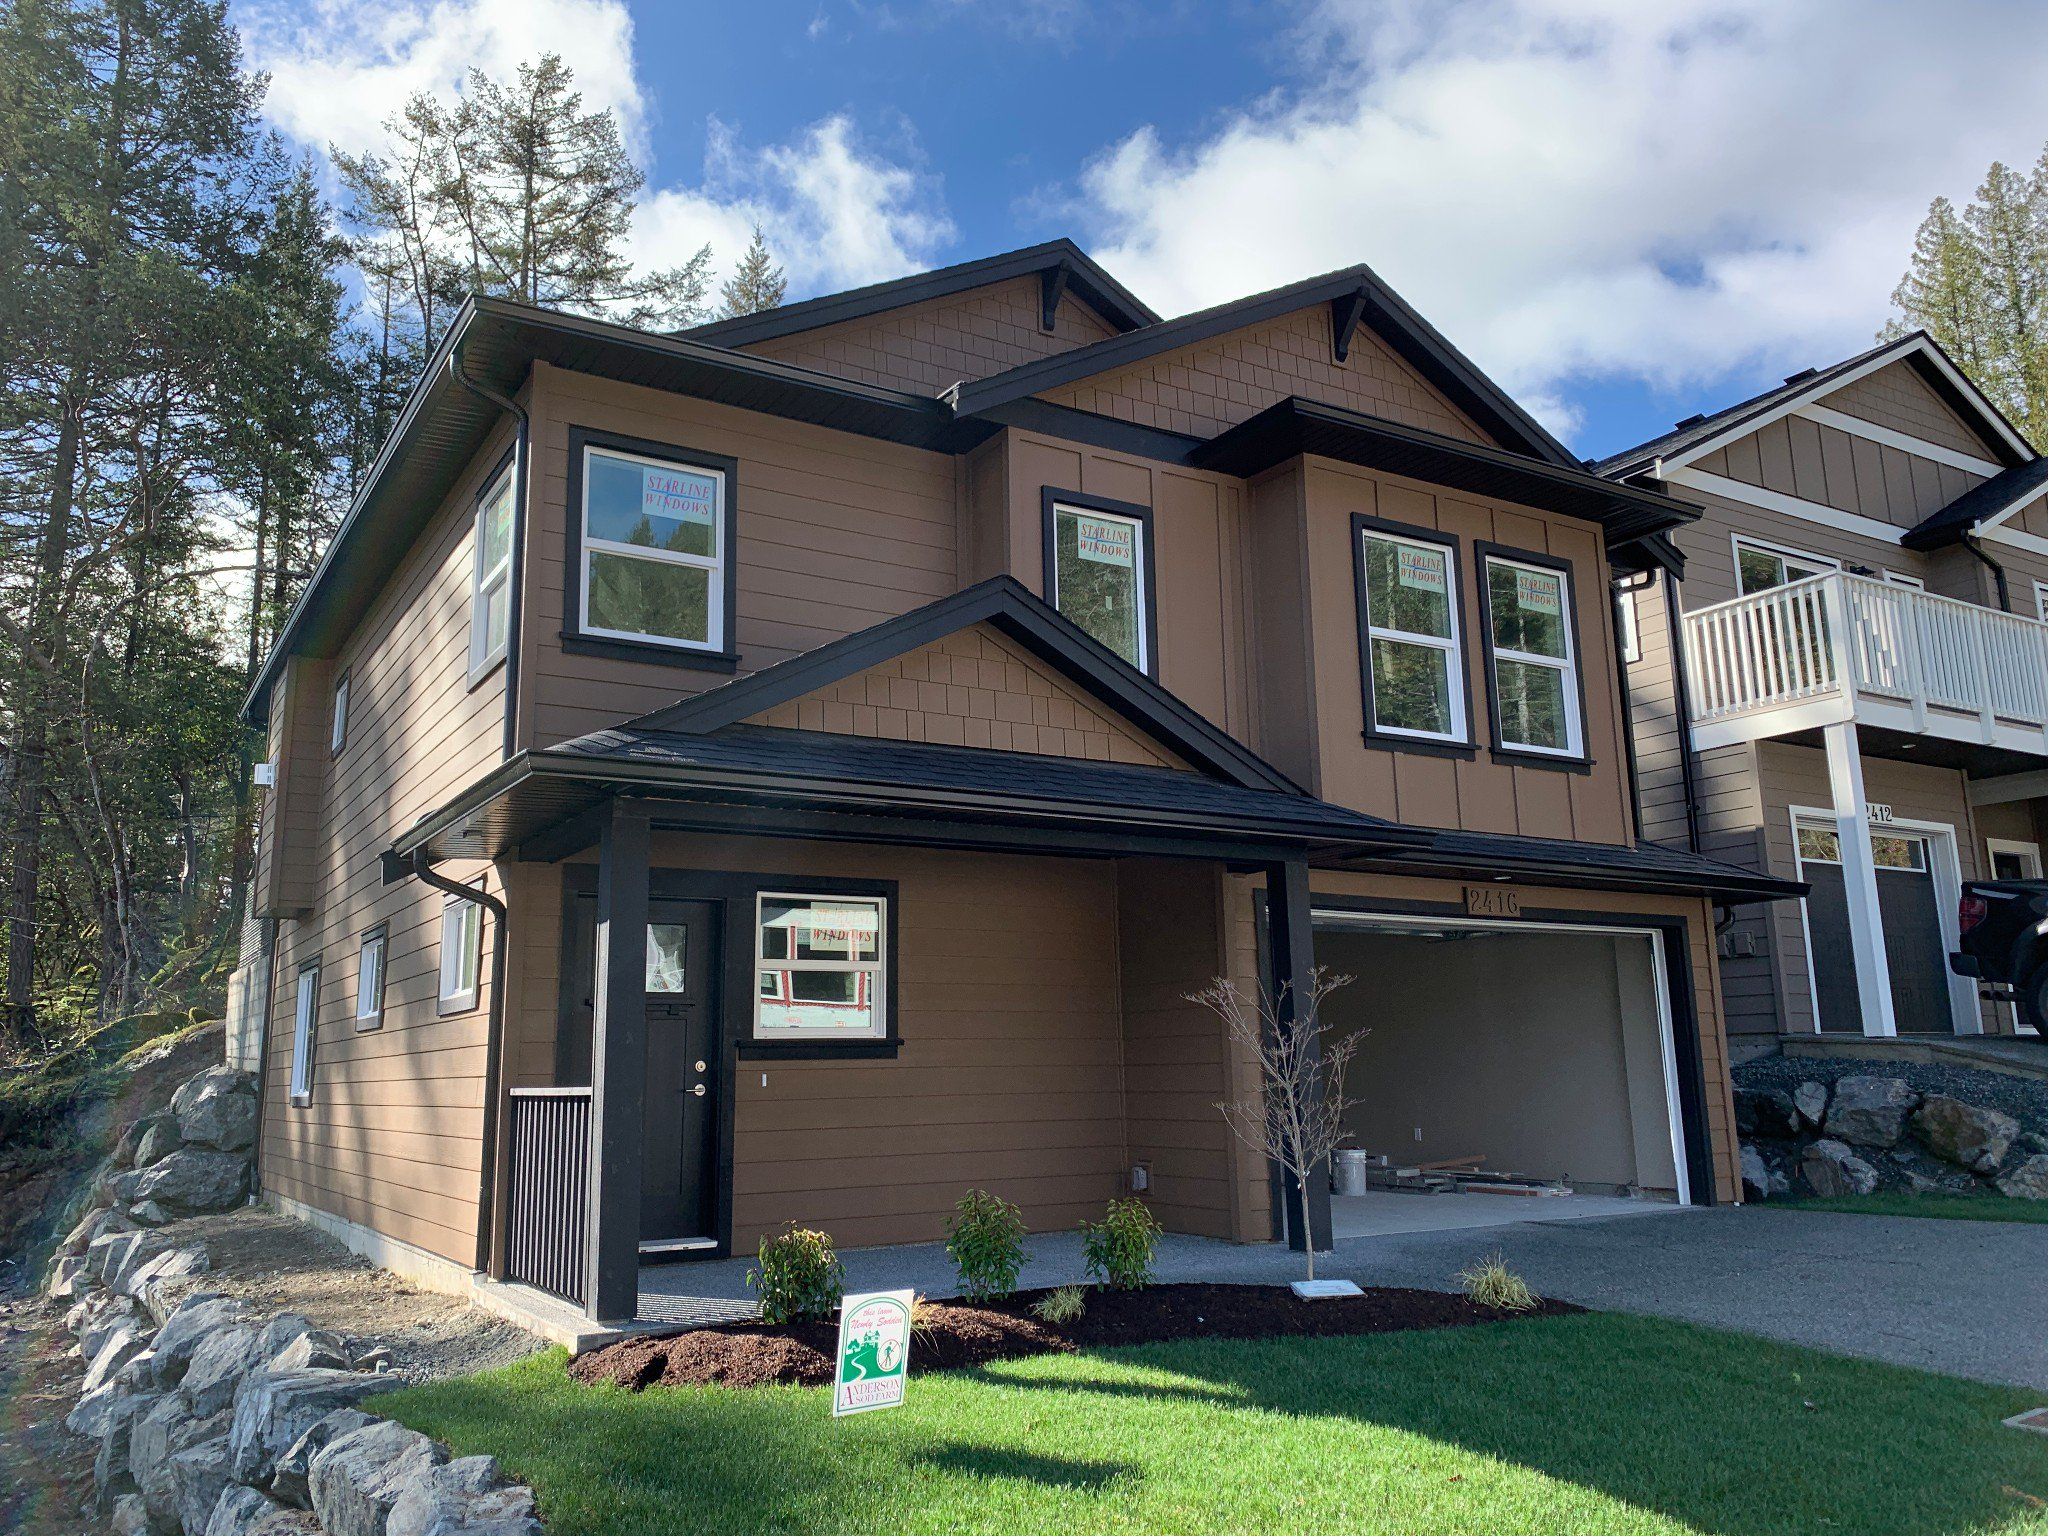 Main Photo: 2416 Chilco Road in : VR Six Mile Single Family Detached for sale (View Royal)  : MLS®# 408111